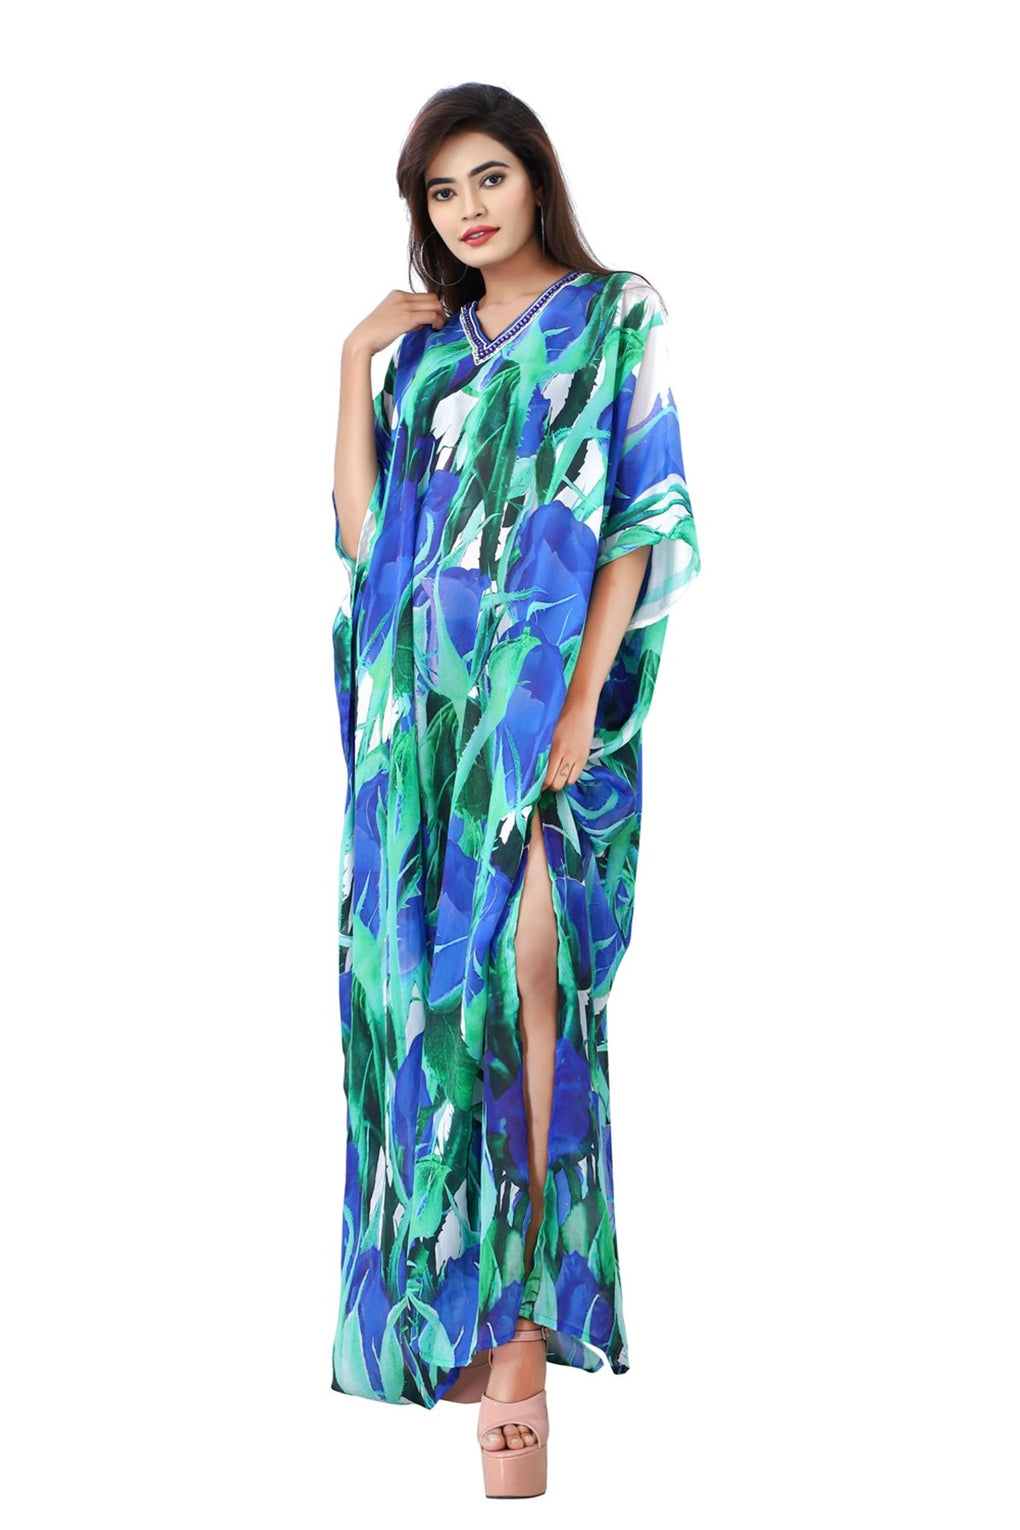 Lovely Blue Rosy Silk Kaftan with elegant roses and V Neck Patterned Sequences - Silk kaftan